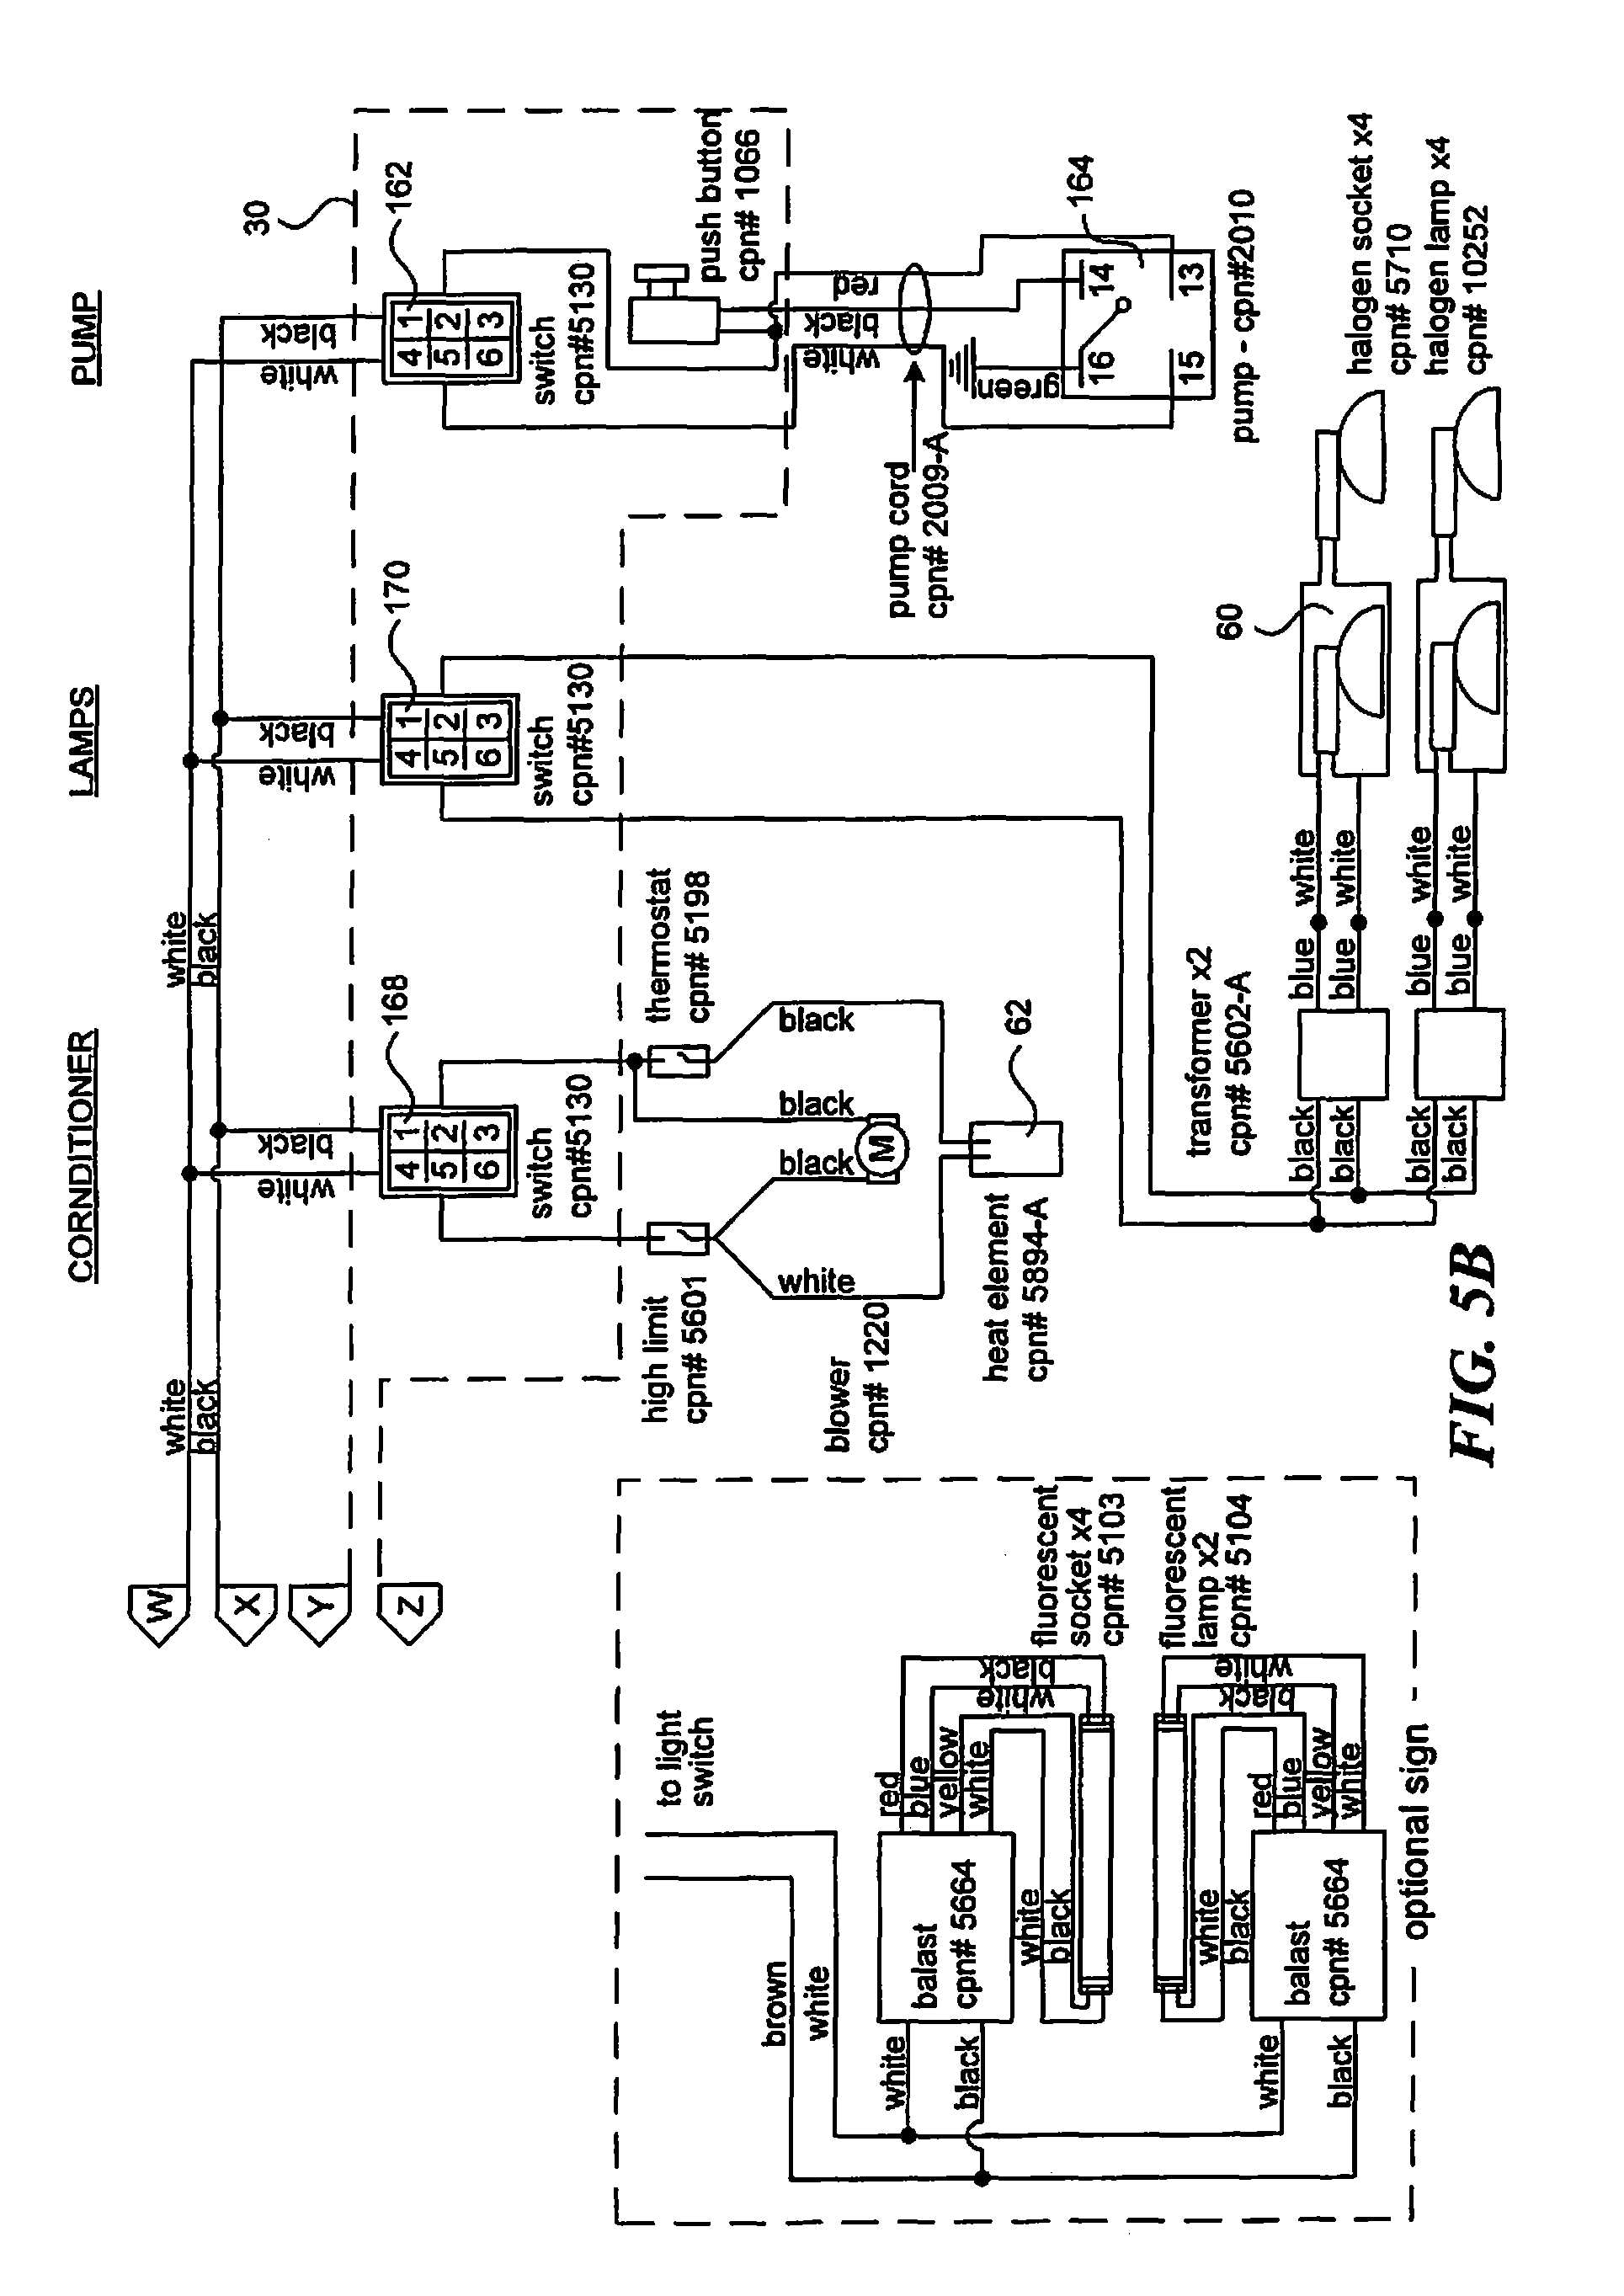 hight resolution of ansul system typical wiring diagram